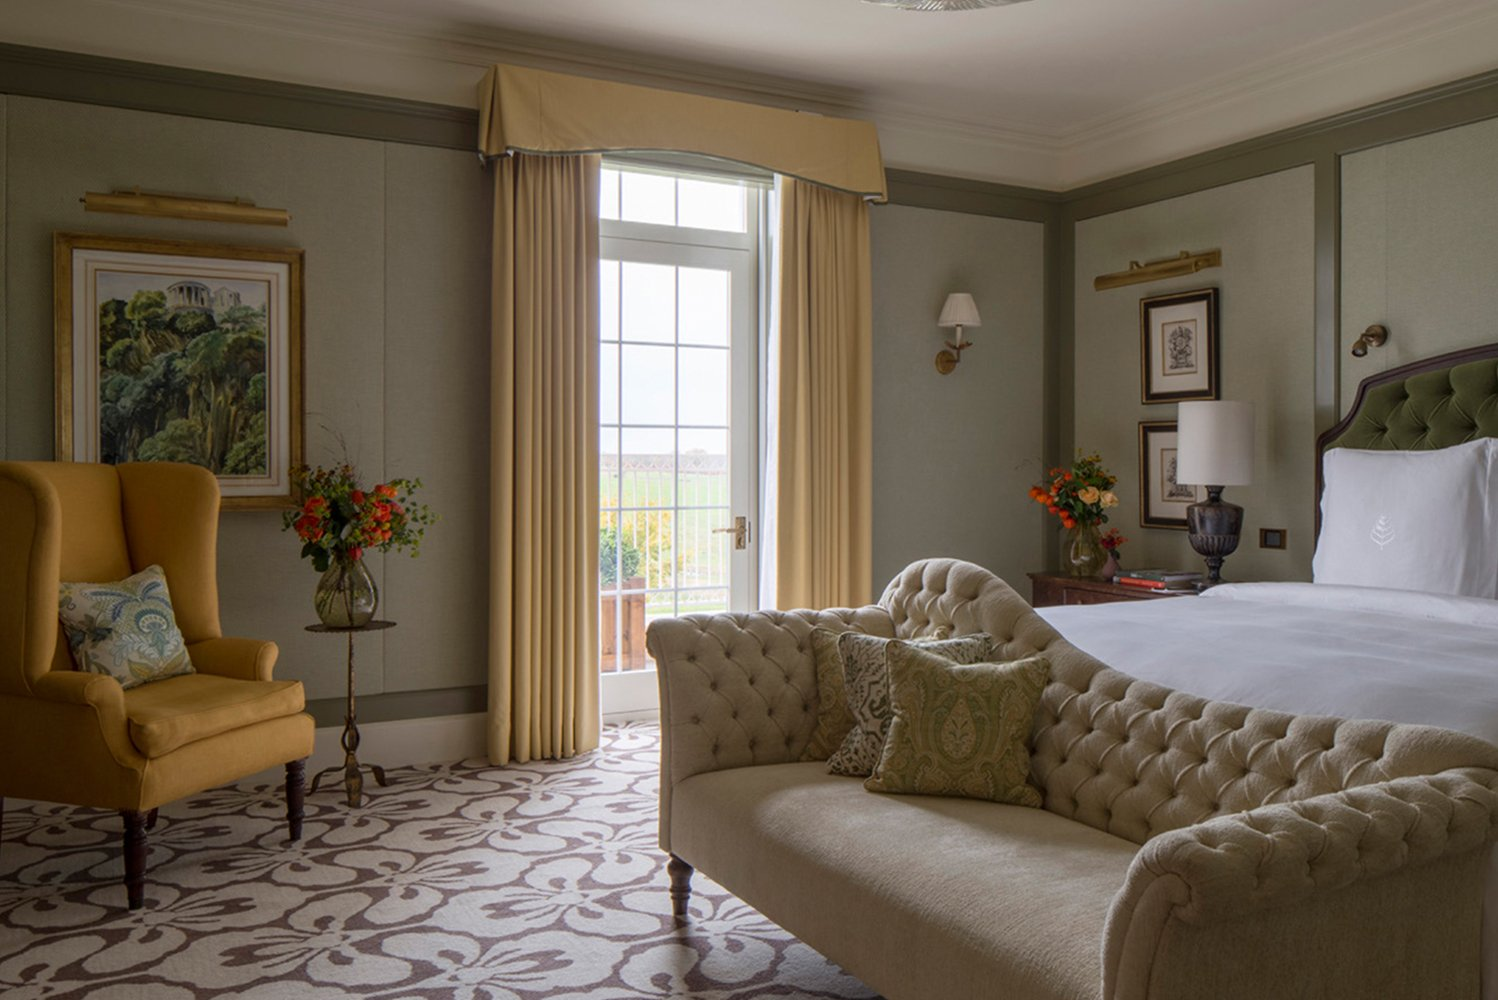 Four Seasons Hotel Hampshire unveiled its newly redesigned Royal Suite, created under the helm of designer Martin Brudnizki of the Martin Brudnizki Design Studio.